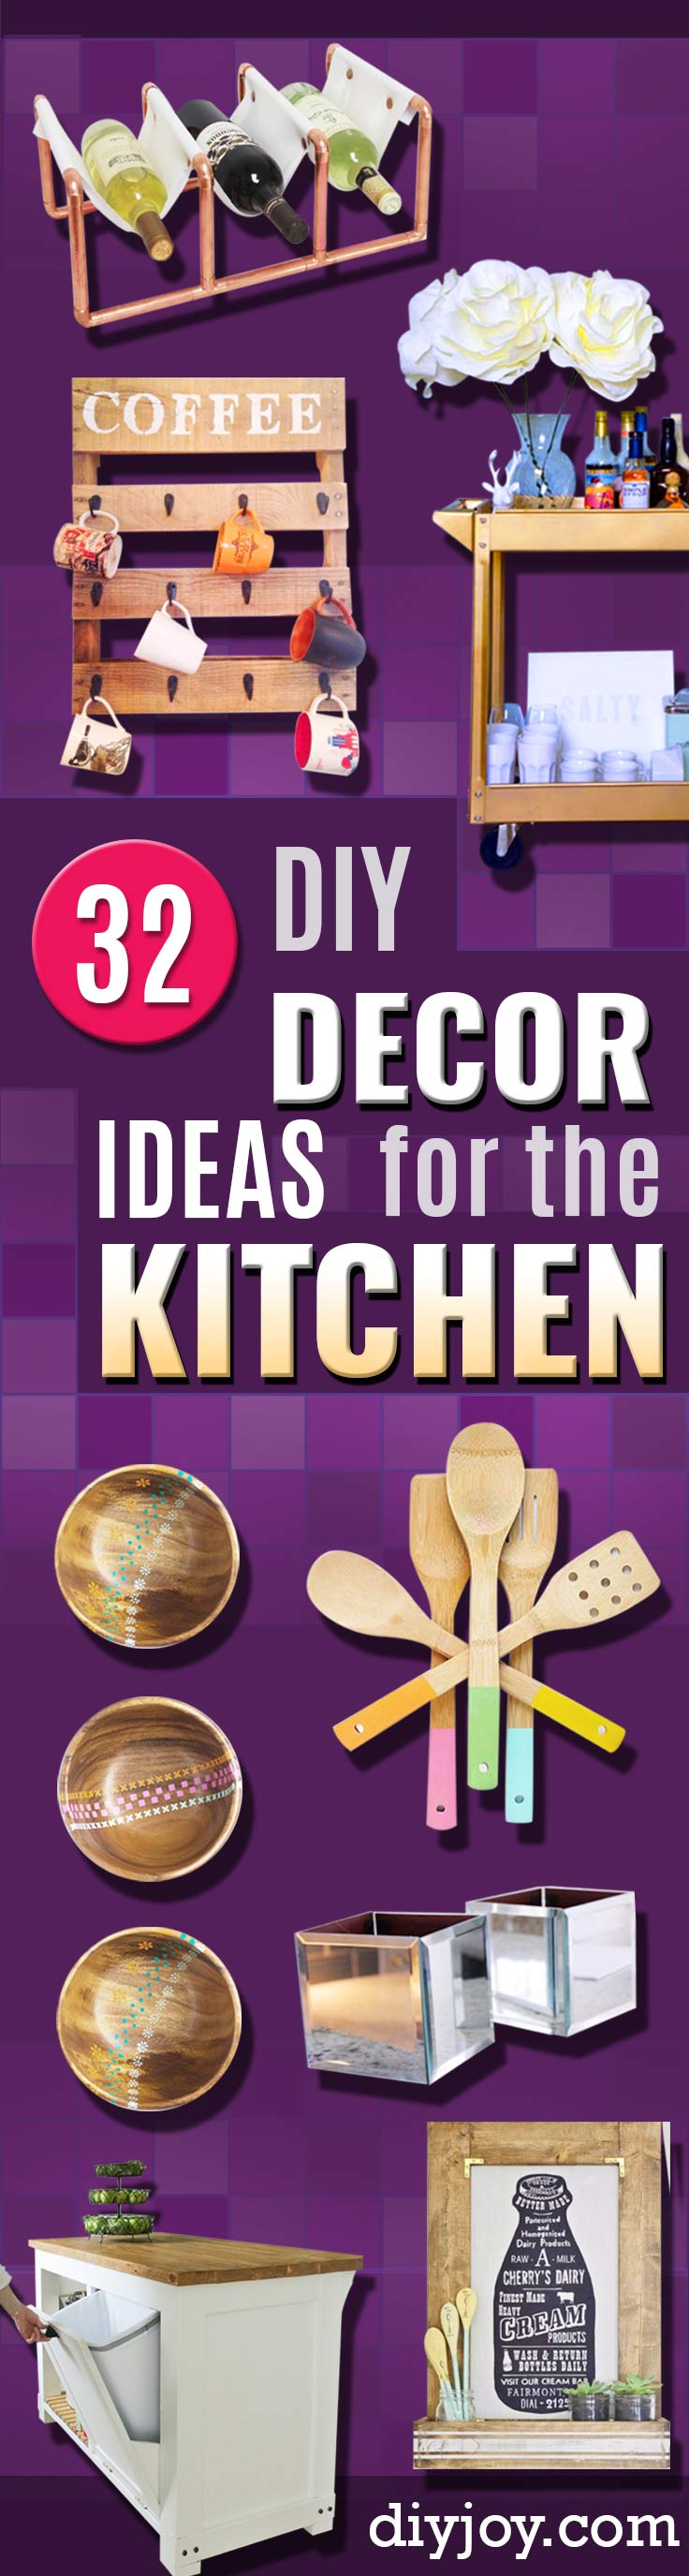 DIY Kitchen Decor Ideas - Creative Furniture Projects, Accessories, Countertop Ideas, Wall Art, Storage, Utensils, Towels and Rustic Furnishings